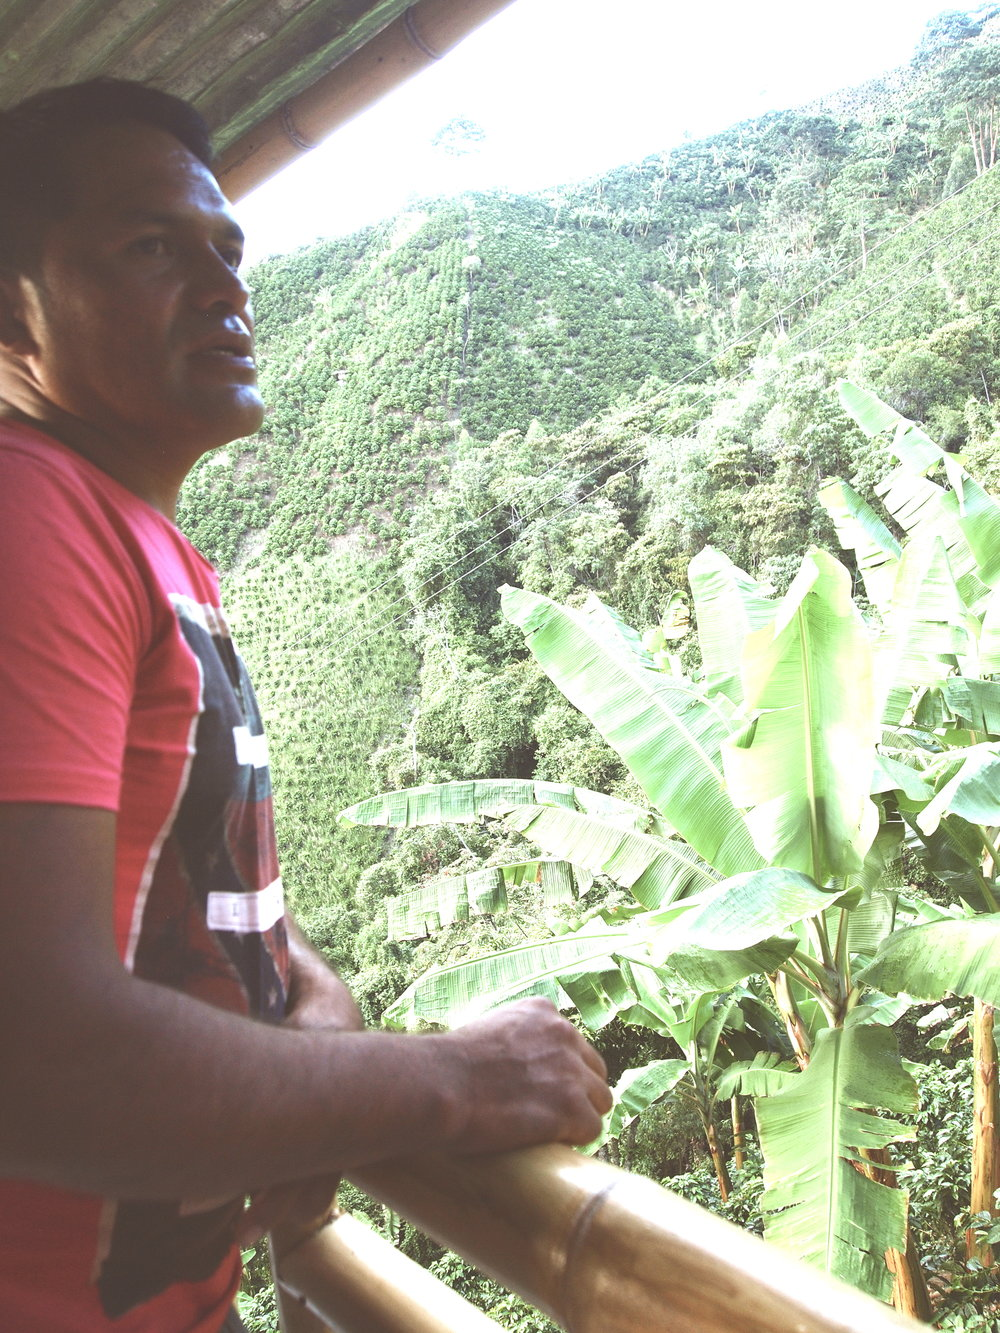 Alexander Ordoñez Bravo on his finca Los Naranjos, in Acevedo, Huila, Colombia